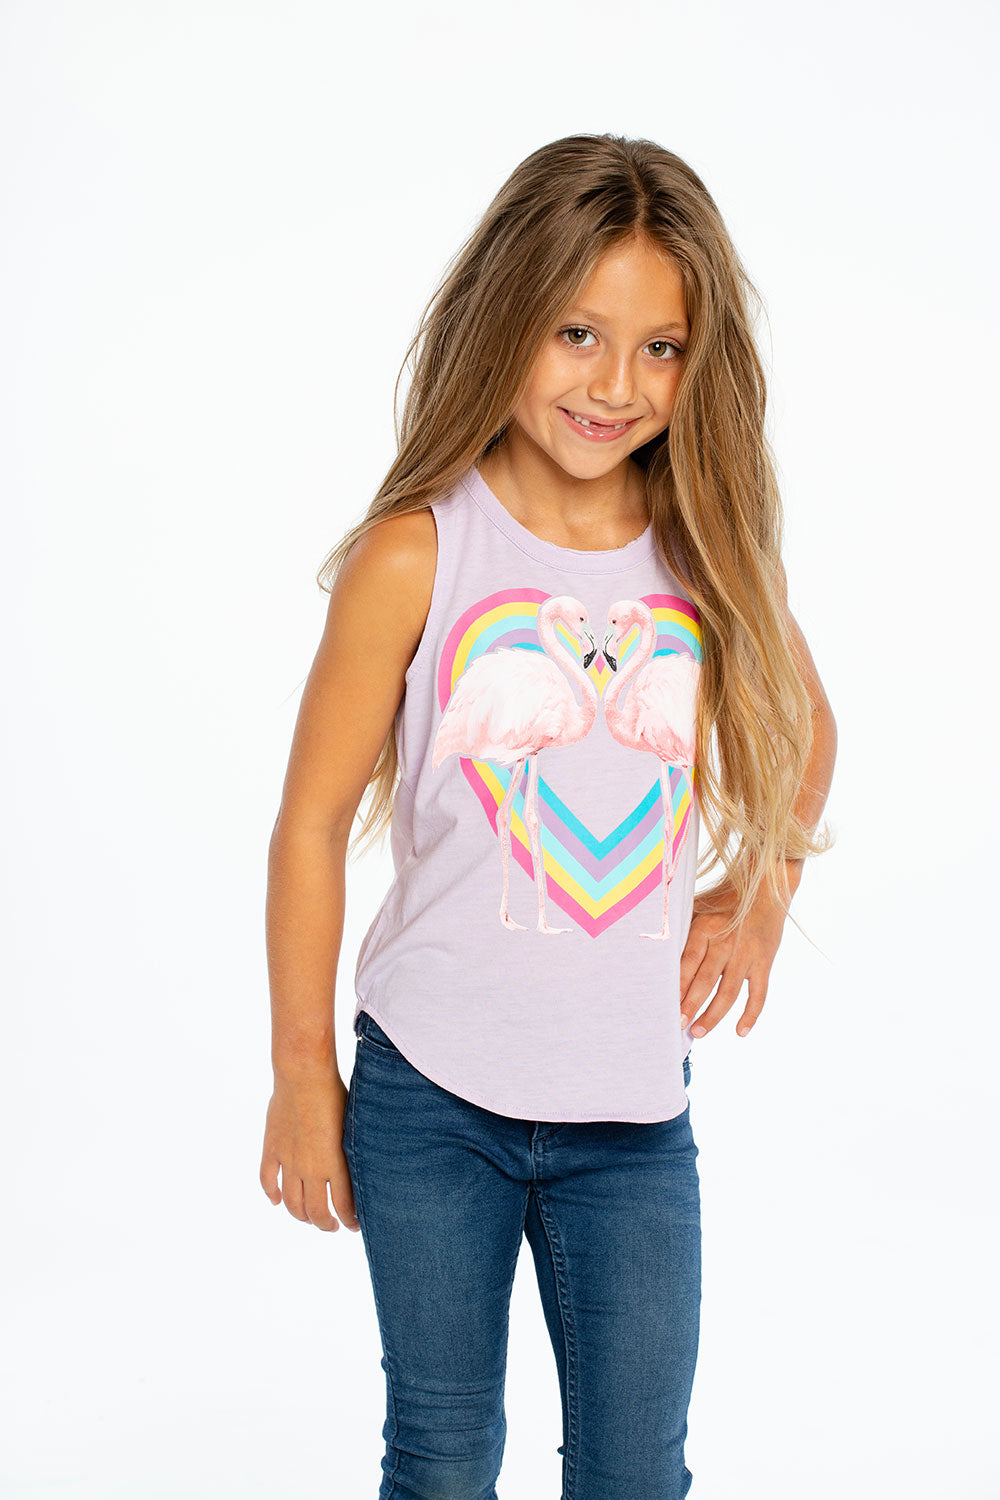 Flamingo Luv GIRLS chaserbrand4.myshopify.com